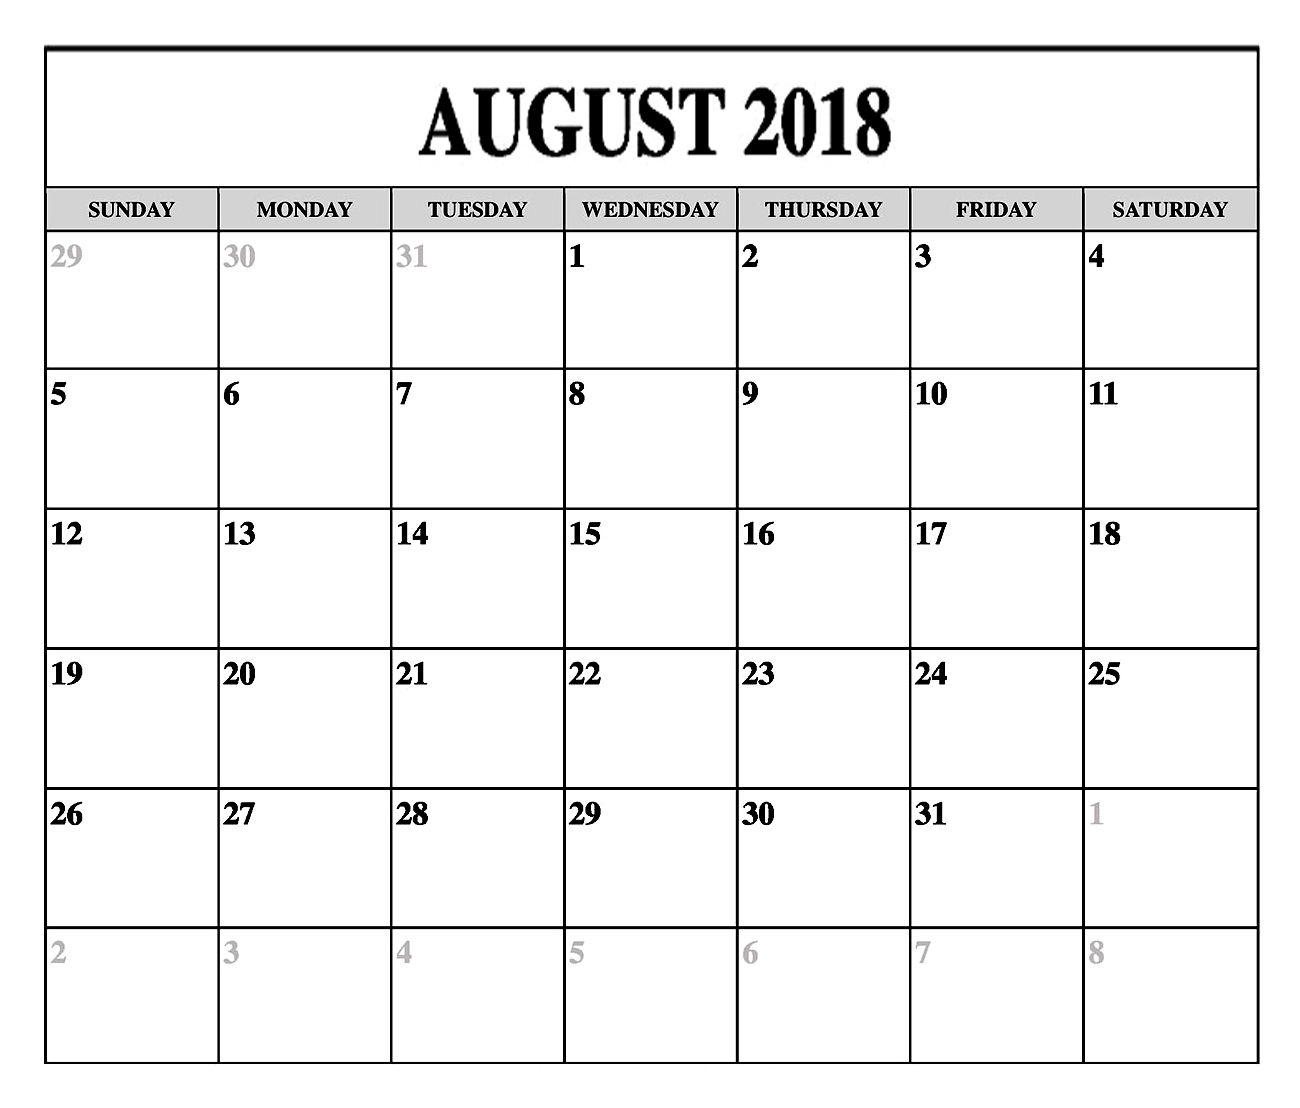 august 2018 monthly calendar printable printable calendar Calendar August 2018 Printable Template erdferdf